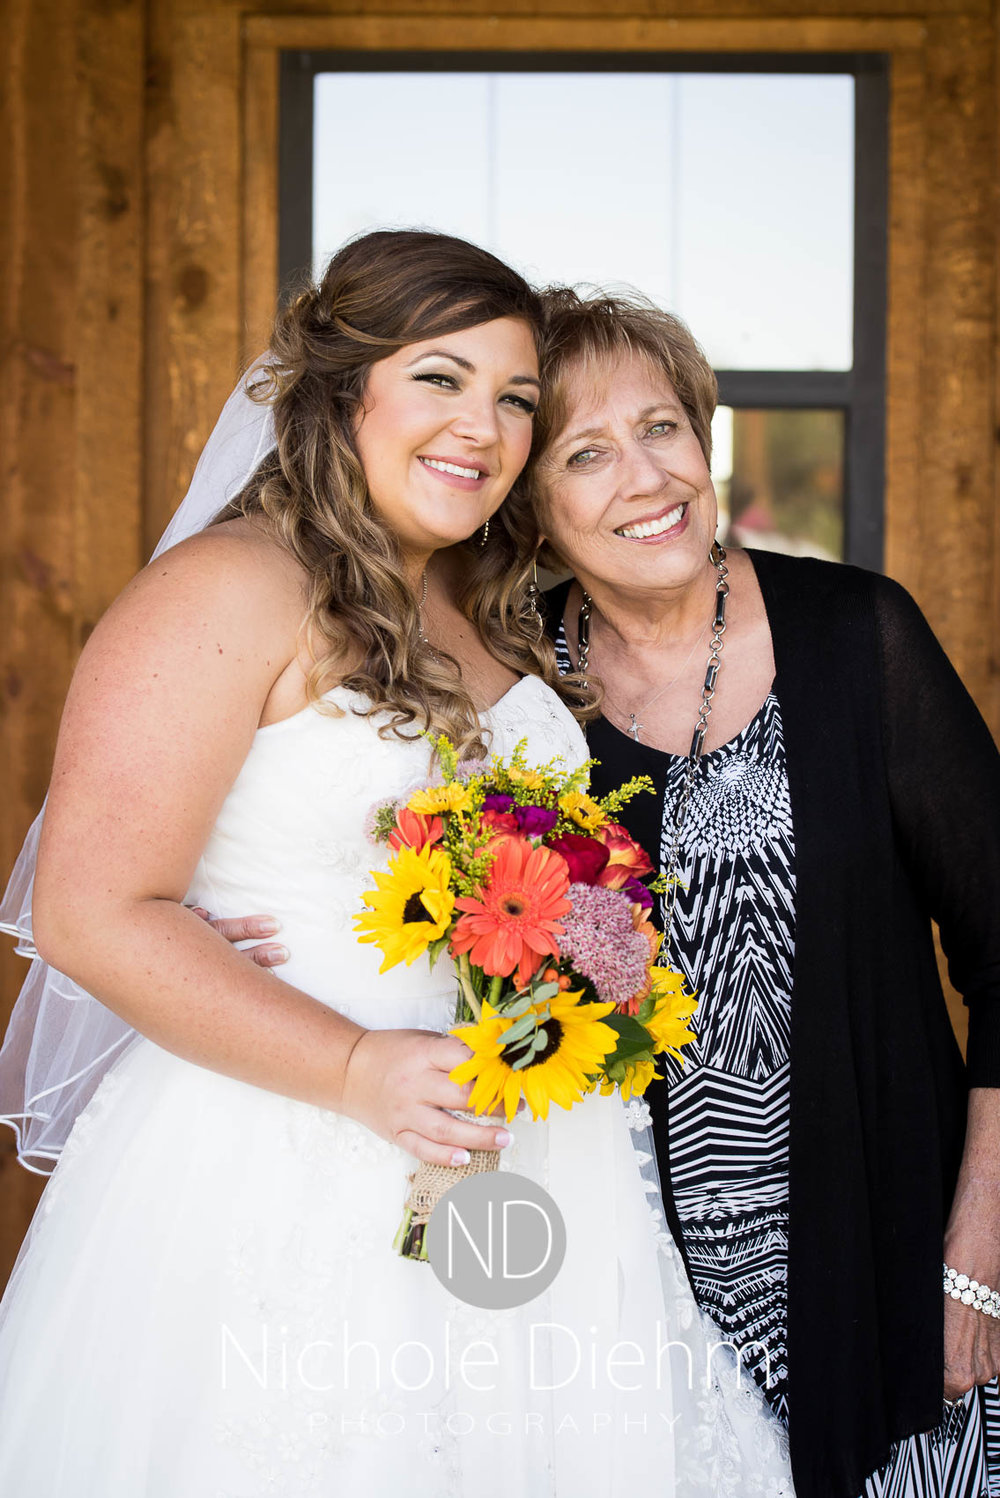 Cedar-Falls-Iowa-Wedding-Photographer-Sioux-Falls-South-Dakota-Emily-Stricklin-Jordy-Reinders-Meadow-Barn-Fall-Nichole-Diehm-Photography-Venue219.jpg